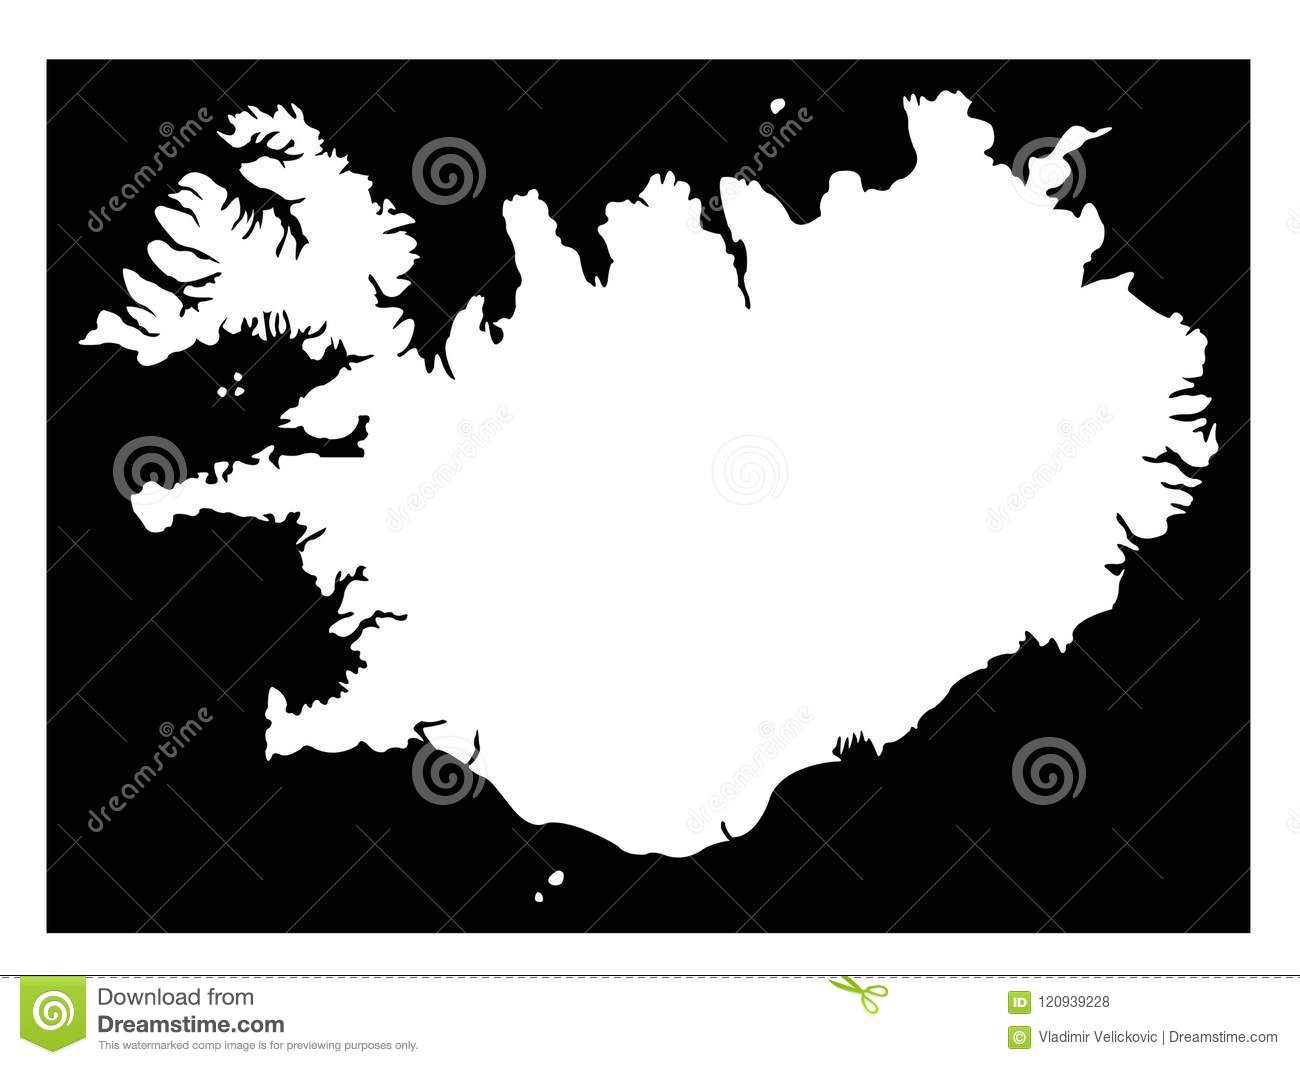 Iceland Map - Nordic Island Country In Europe Stock Vector ...